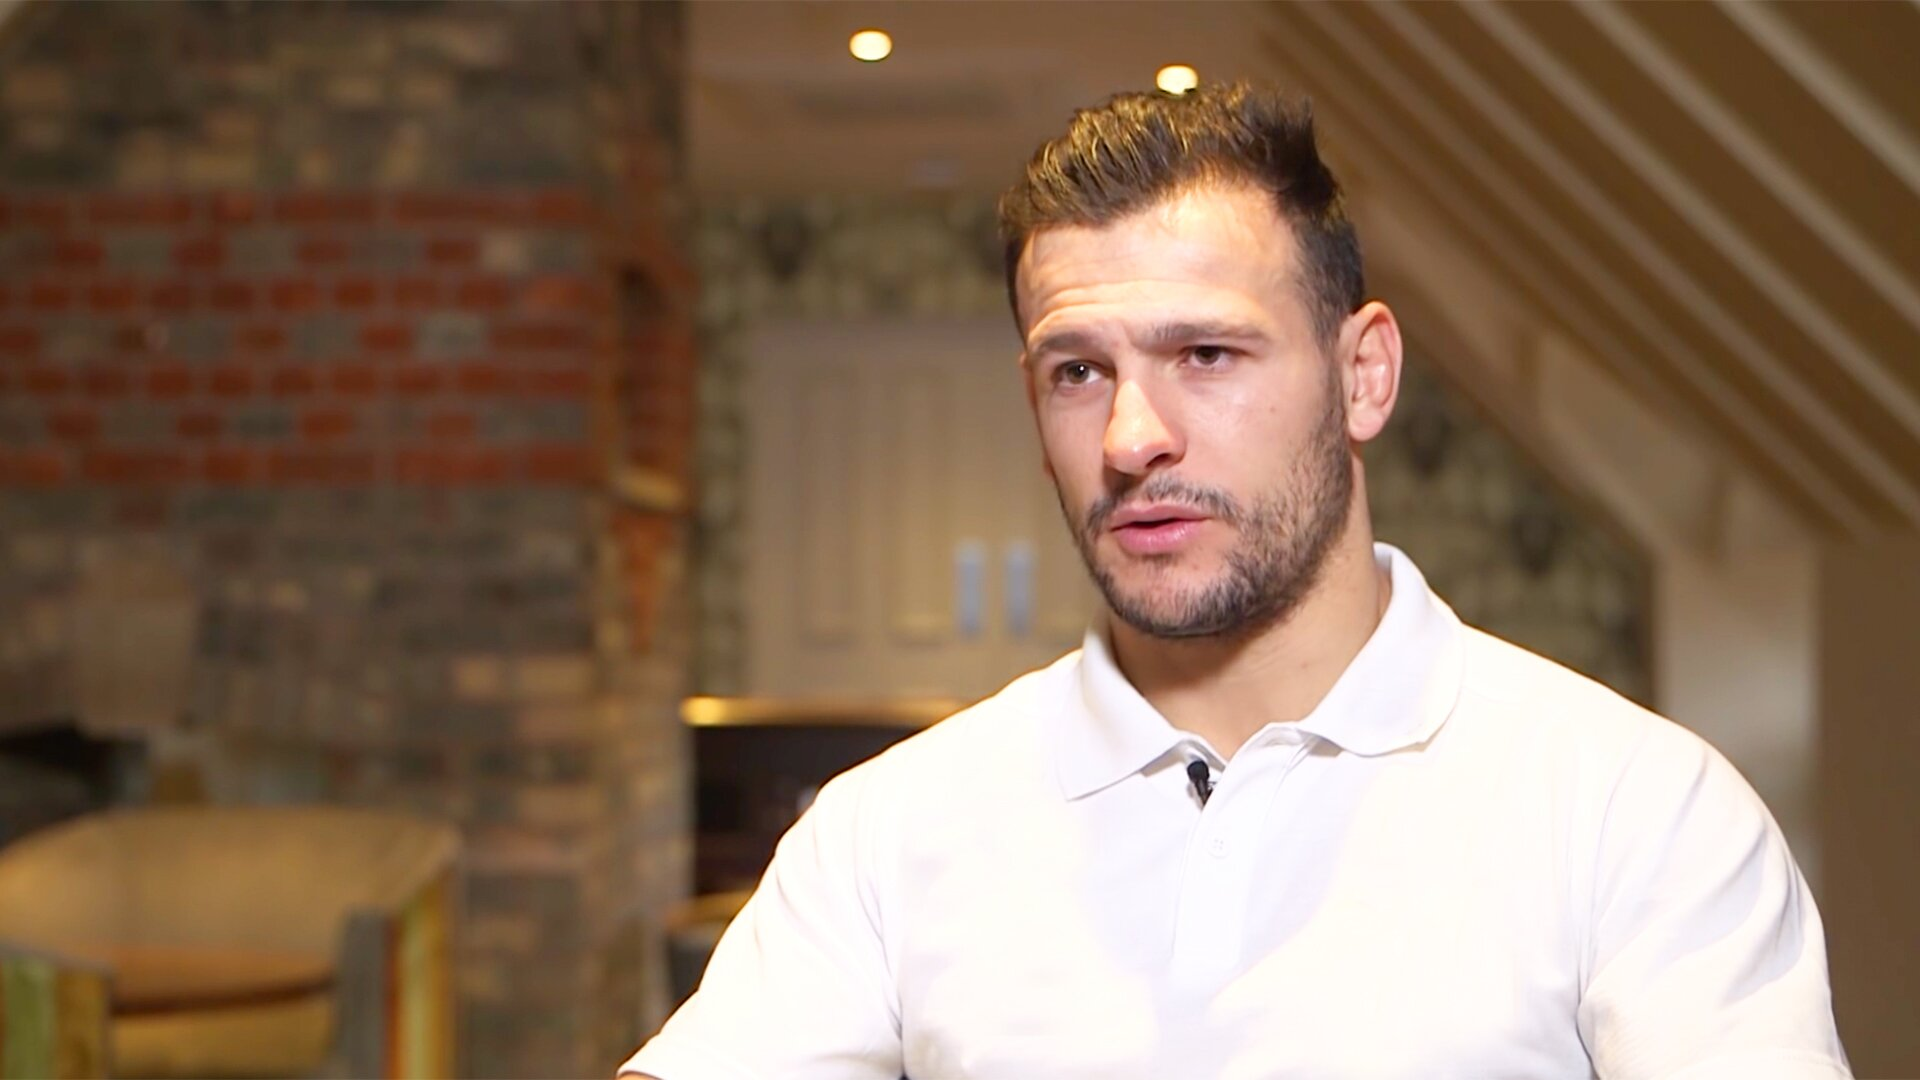 Fans backlash against Danny Care after he voices discontent at new fixture schedule